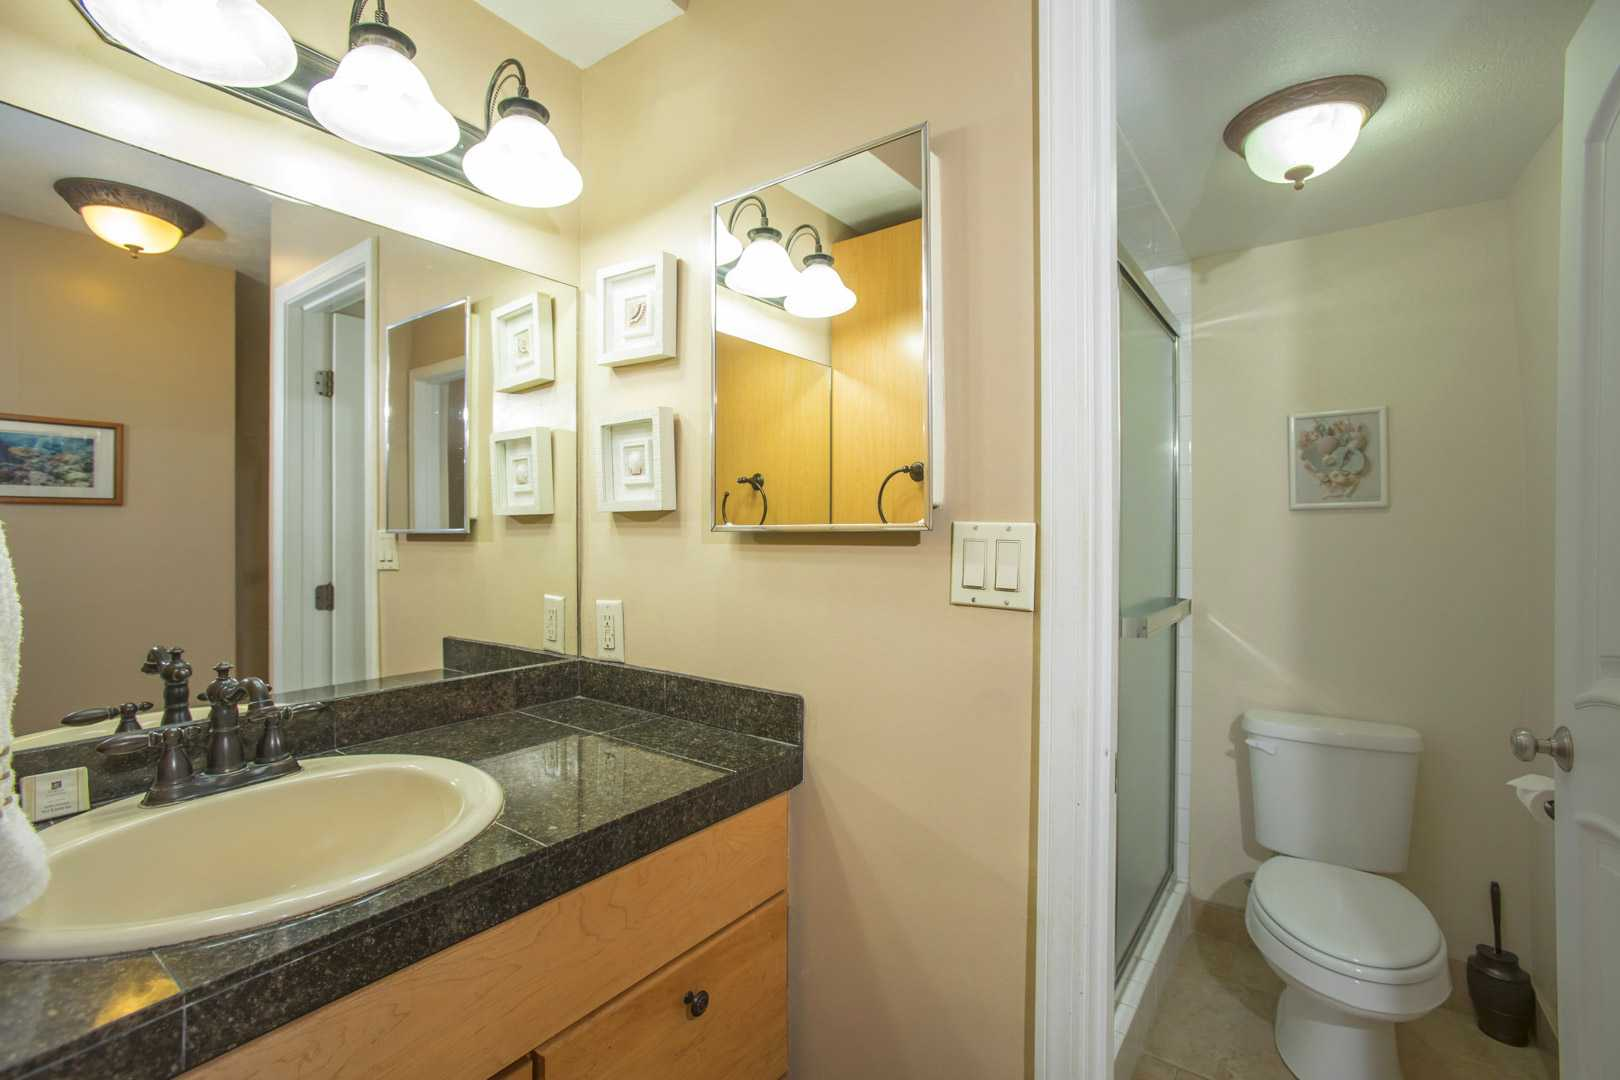 Vanity into bathroom